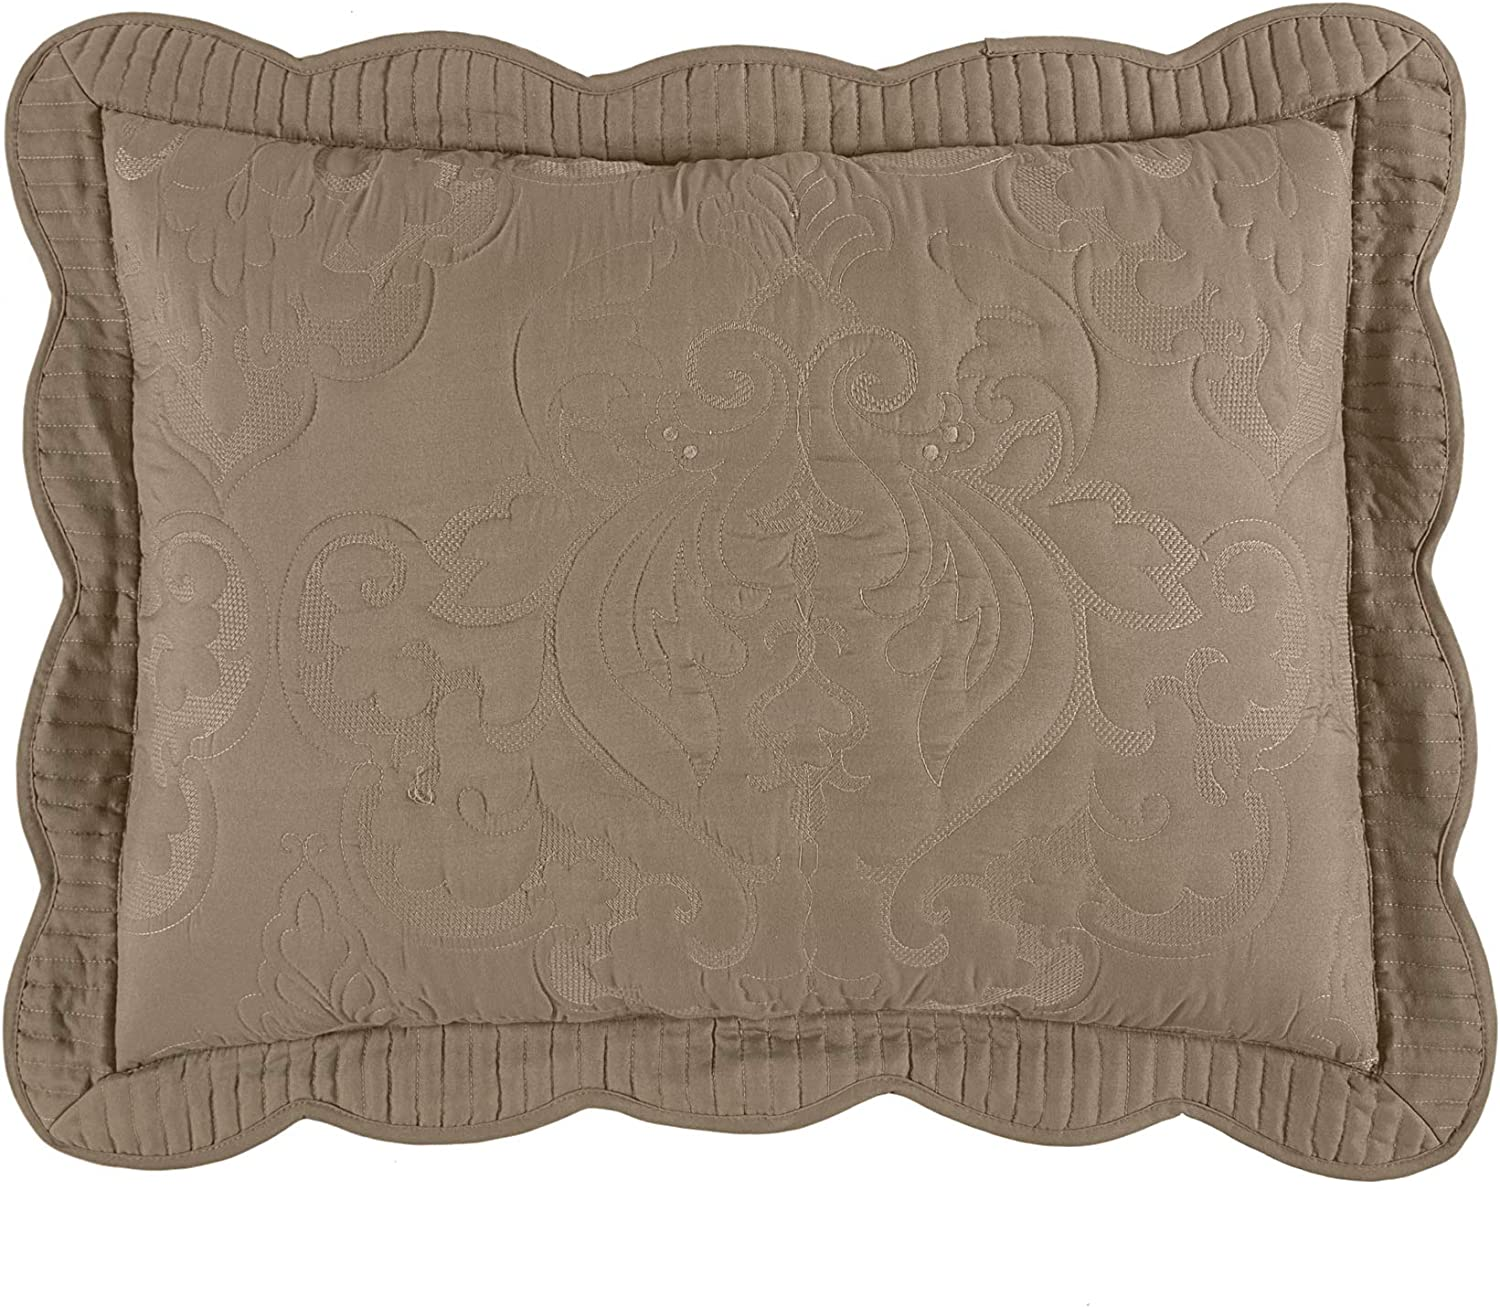 BrylaneHome Sales for sale Amelia Sham Max 77% OFF Pillow - King Beige Taupe